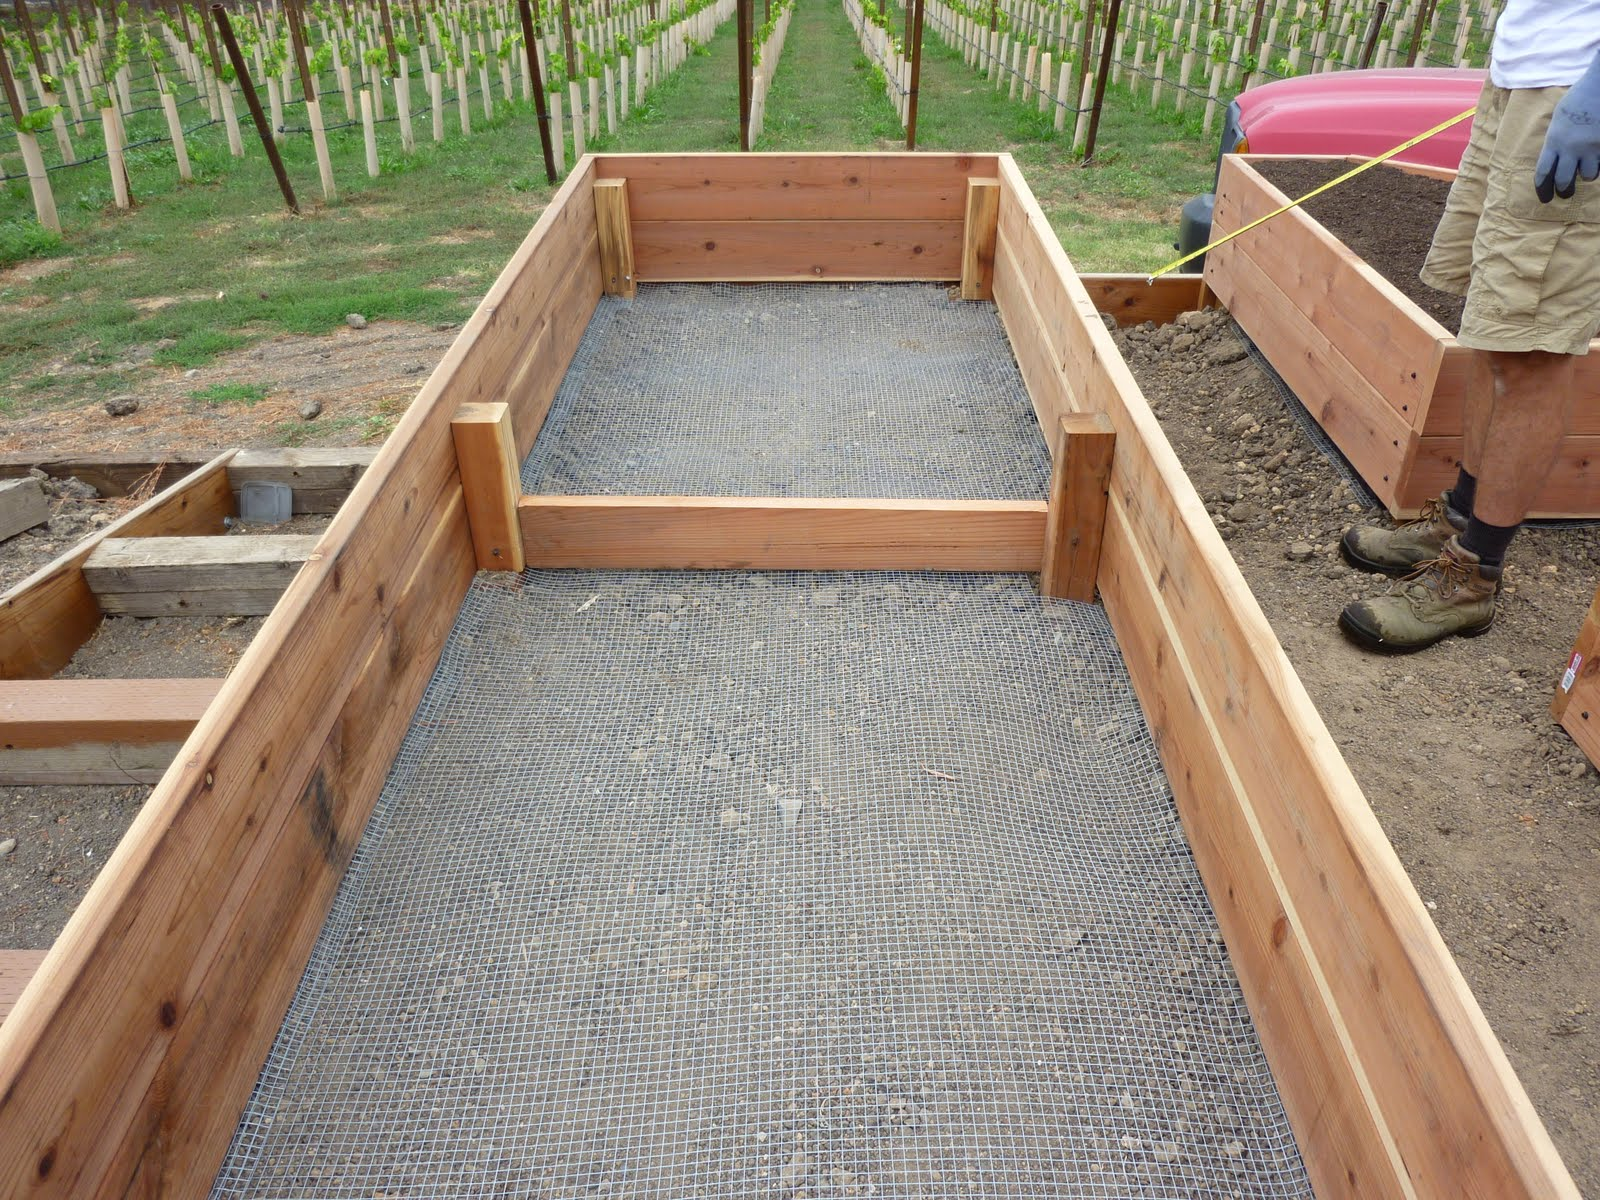 foods for long life start your fall and winter vegetable garden how to build a raised bed vegetable garden box - How To Build A Raised Vegetable Garden